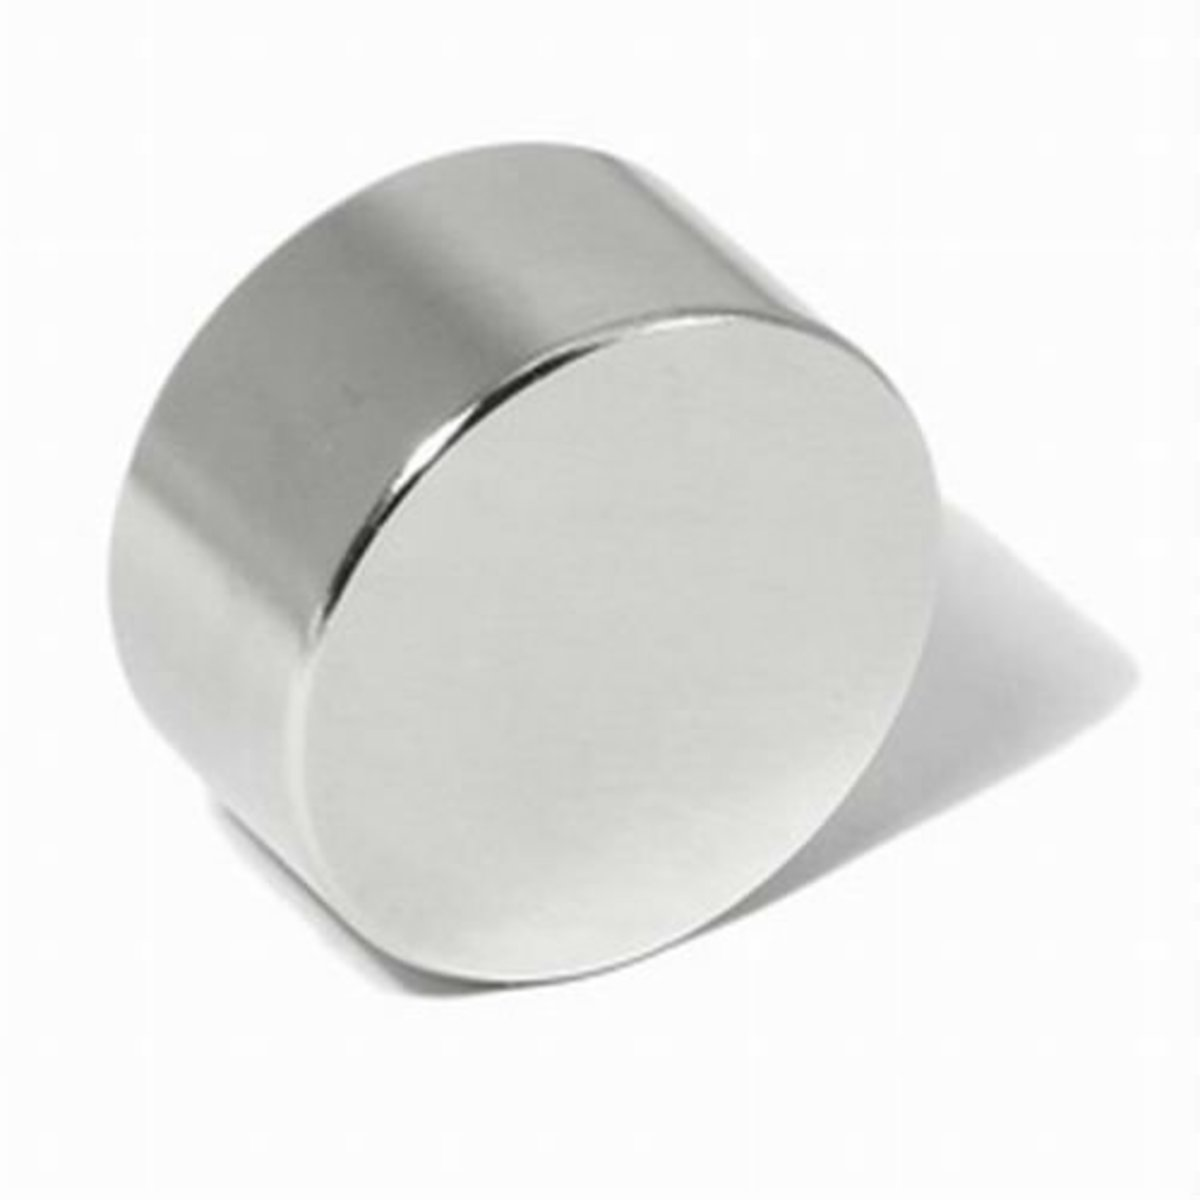 You can perform this test using a powerful rare earth magnet such as a neodymium magnet